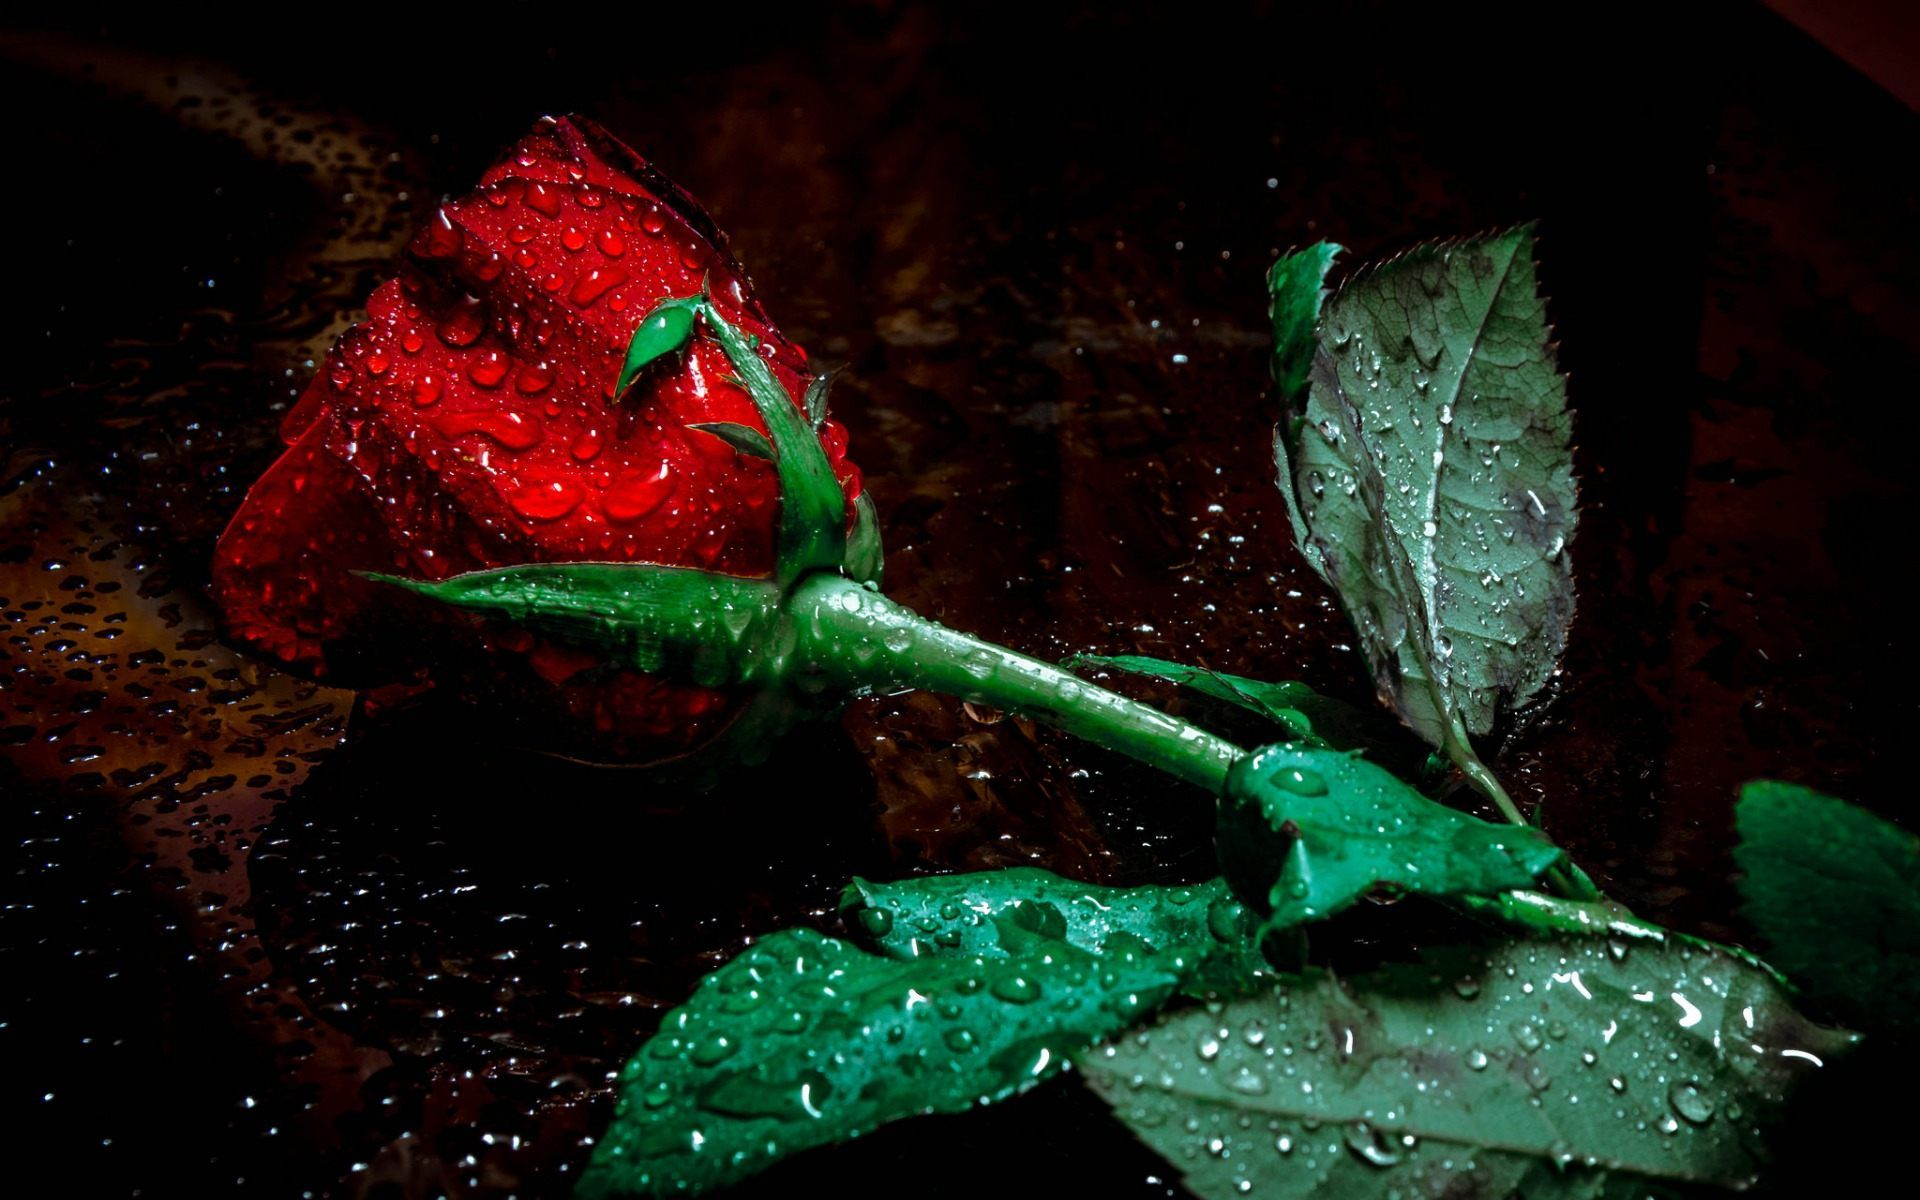 Red Rose Flower In Rain Wallpaper Jpg 1920 1200 Red Roses Wallpaper Beautiful Flowers Wallpapers Red Rose Pictures